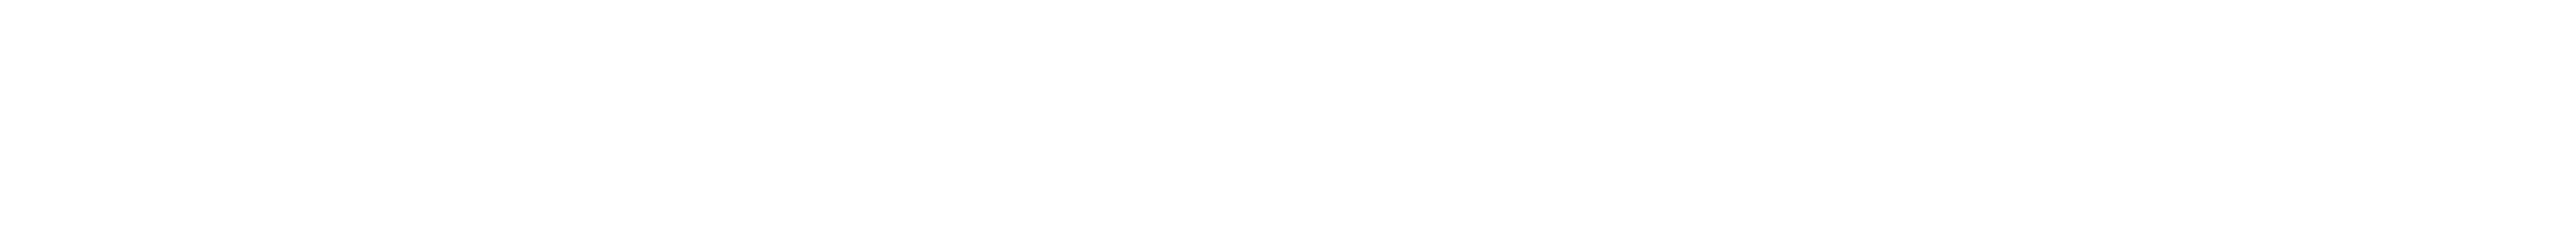 worldclubdome-logo.png